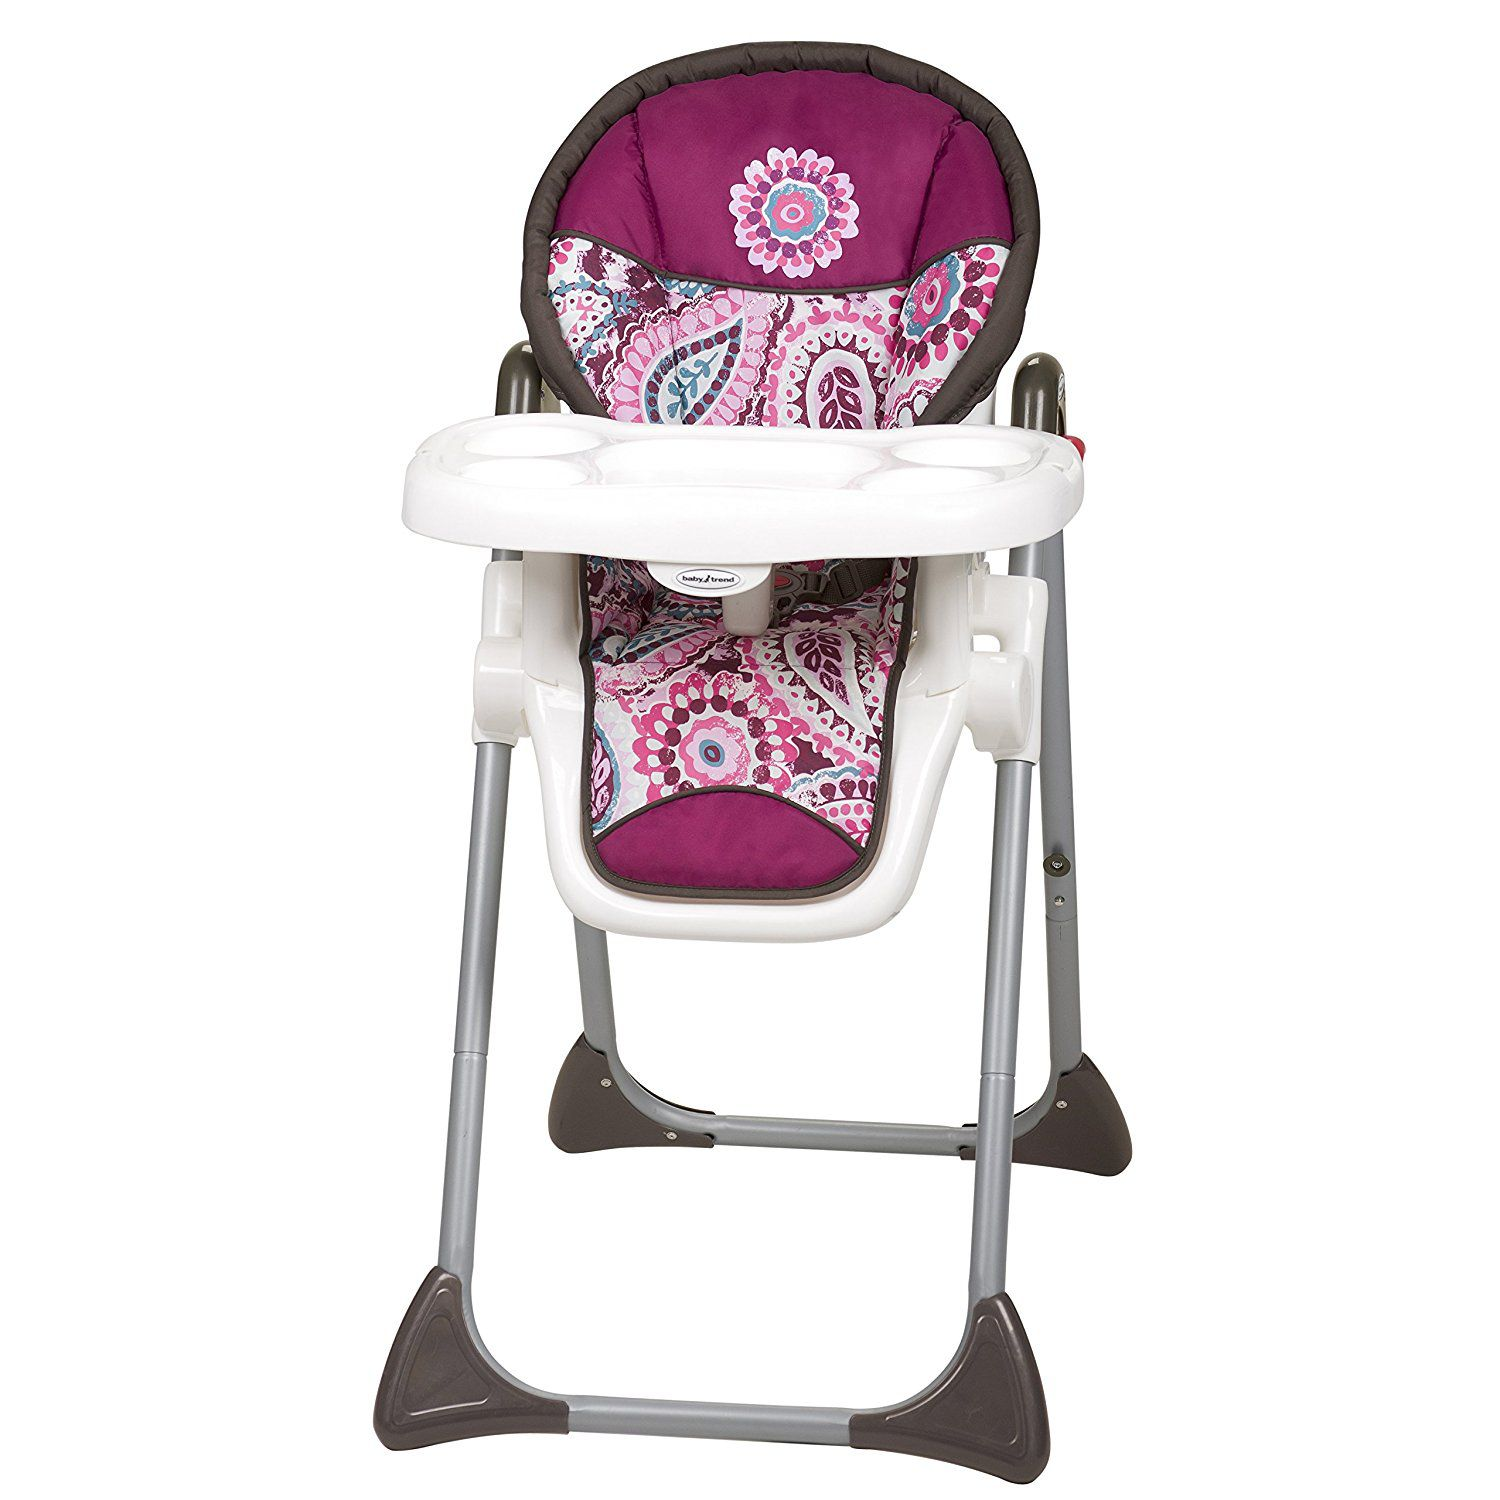 11 budget friendly high chairs under 100